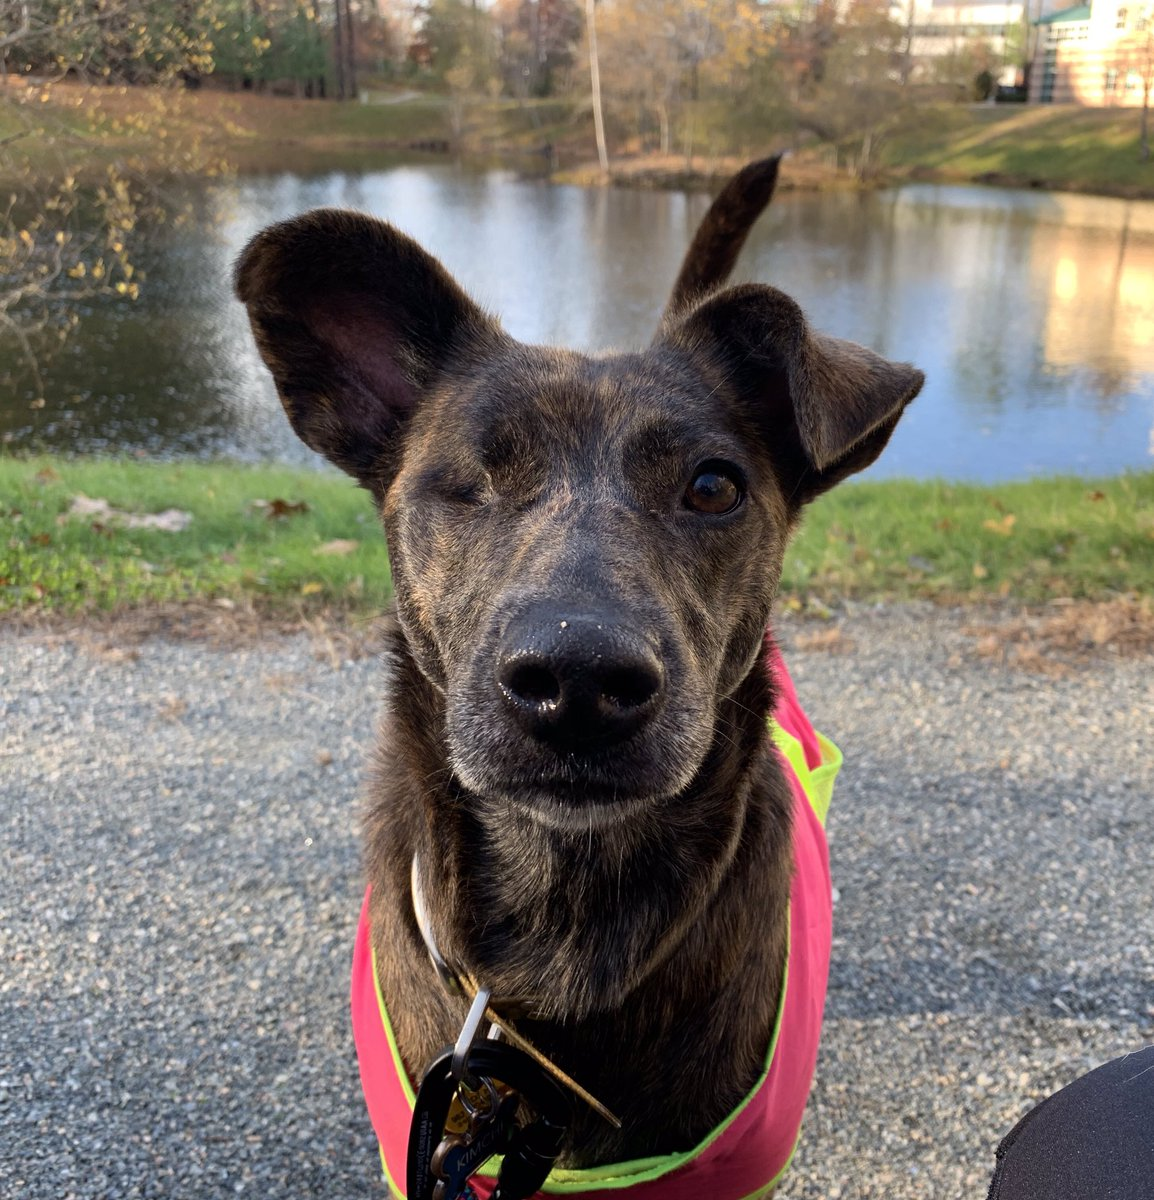 "LOST DOG:  ""Kimchi"" was lost this morning in the Upton State Forest near the Hopkinton line. She has one eye and was wearing a pink reflective vest. If located please contact the Upton Police (508) 529-3200. <br>http://pic.twitter.com/BPGZ1M3zT5"